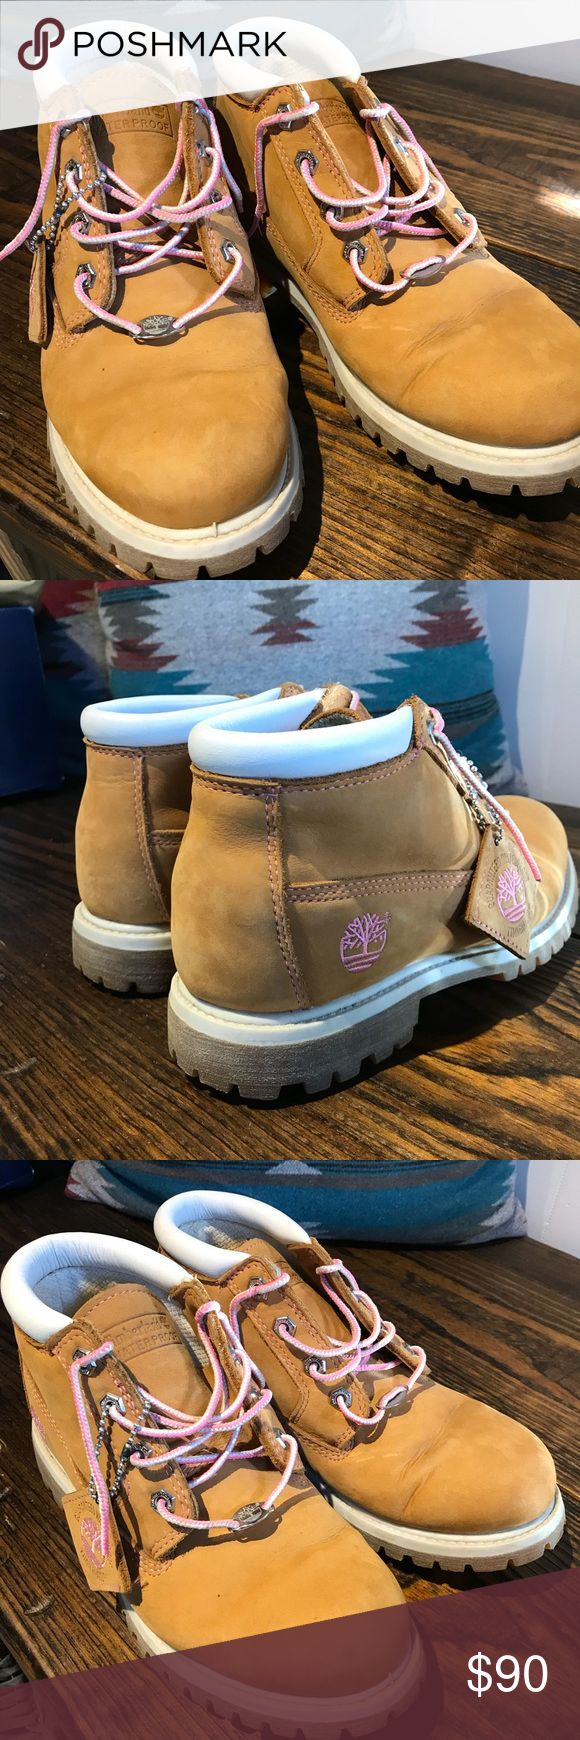 Timberland waterproof boots women's sz 7.5 Timberland waterproof boots women's sz 7.5. Wheat color with pink laces as pictured. Ask any questions prior to purchasing. I ship fast! Timberland Shoes Ankle Boots & Booties